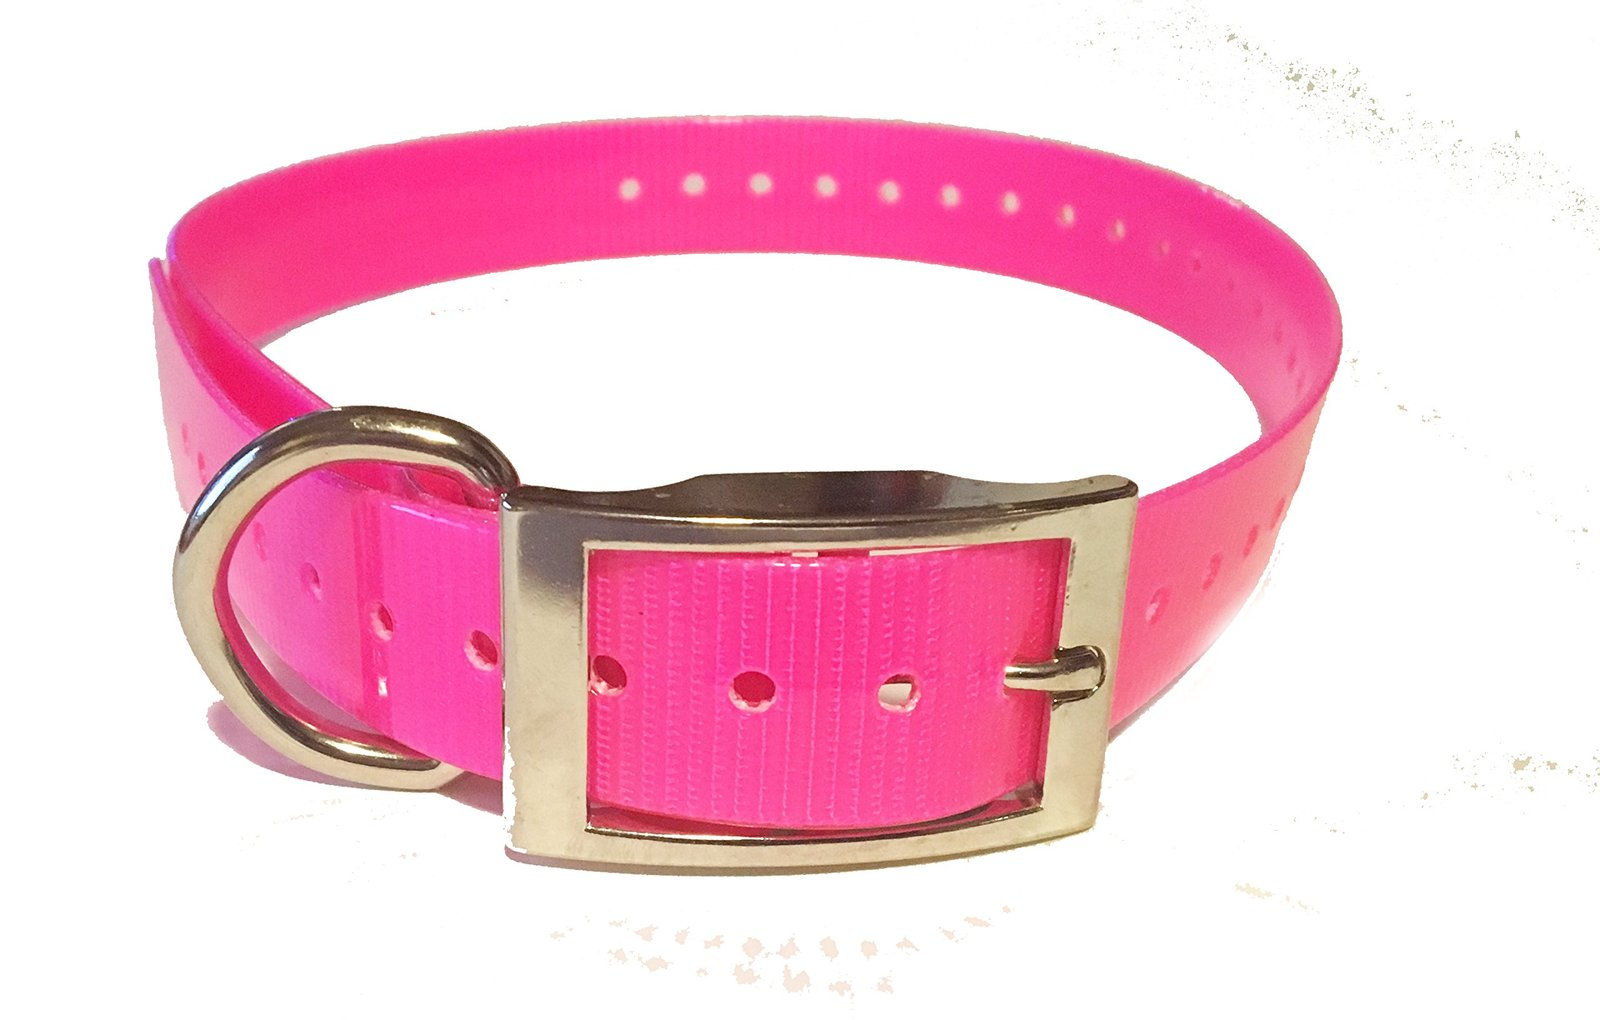 "SparkyPetCo 3/4"" Square Buckle High Flex Neon Pink Dog Strap For Garmin Dogtr..."